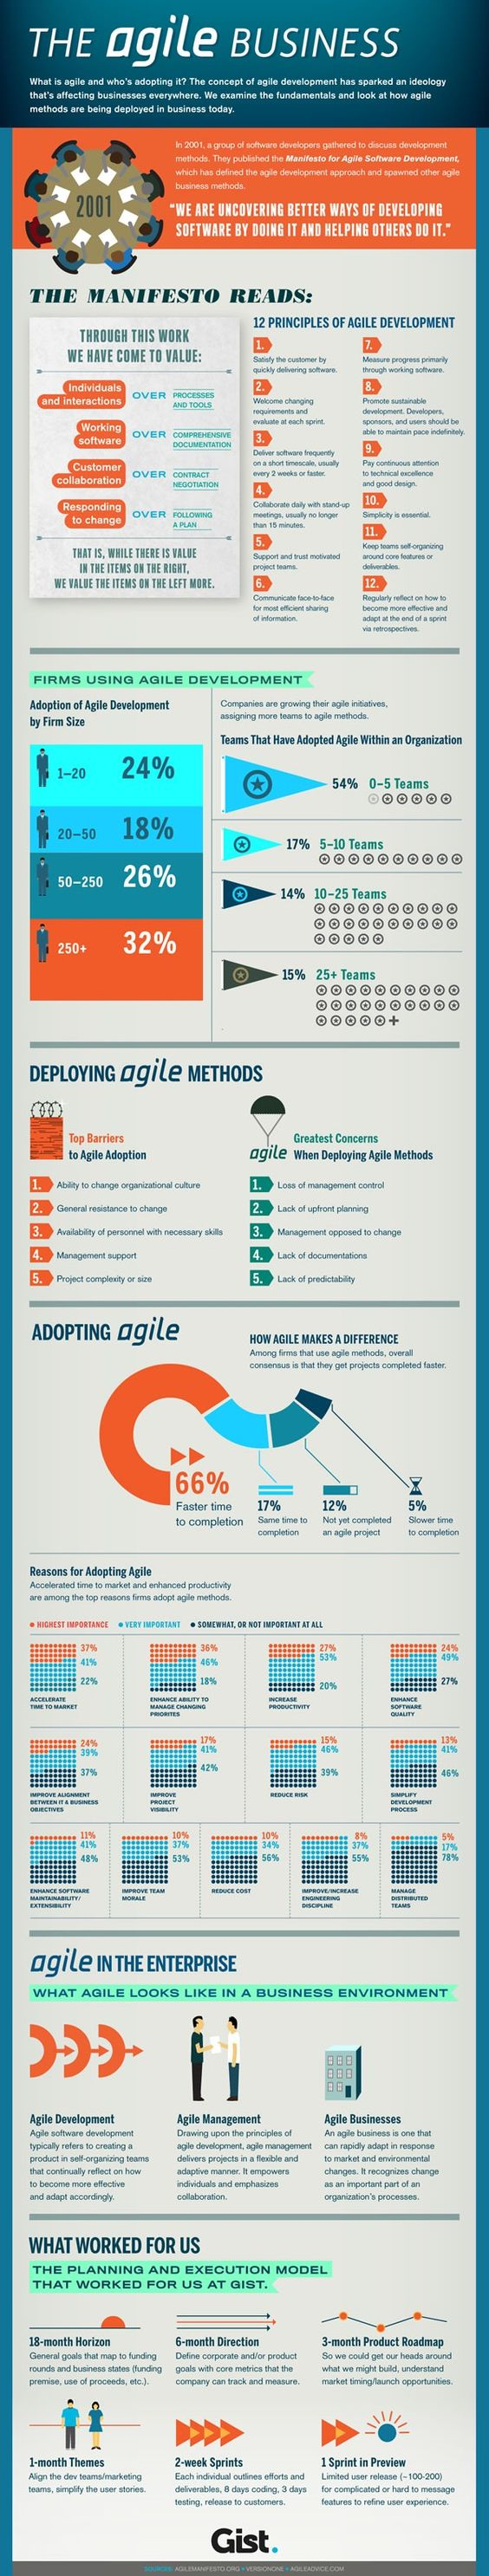 Great infographic explaining some the simple principles of agile project management.